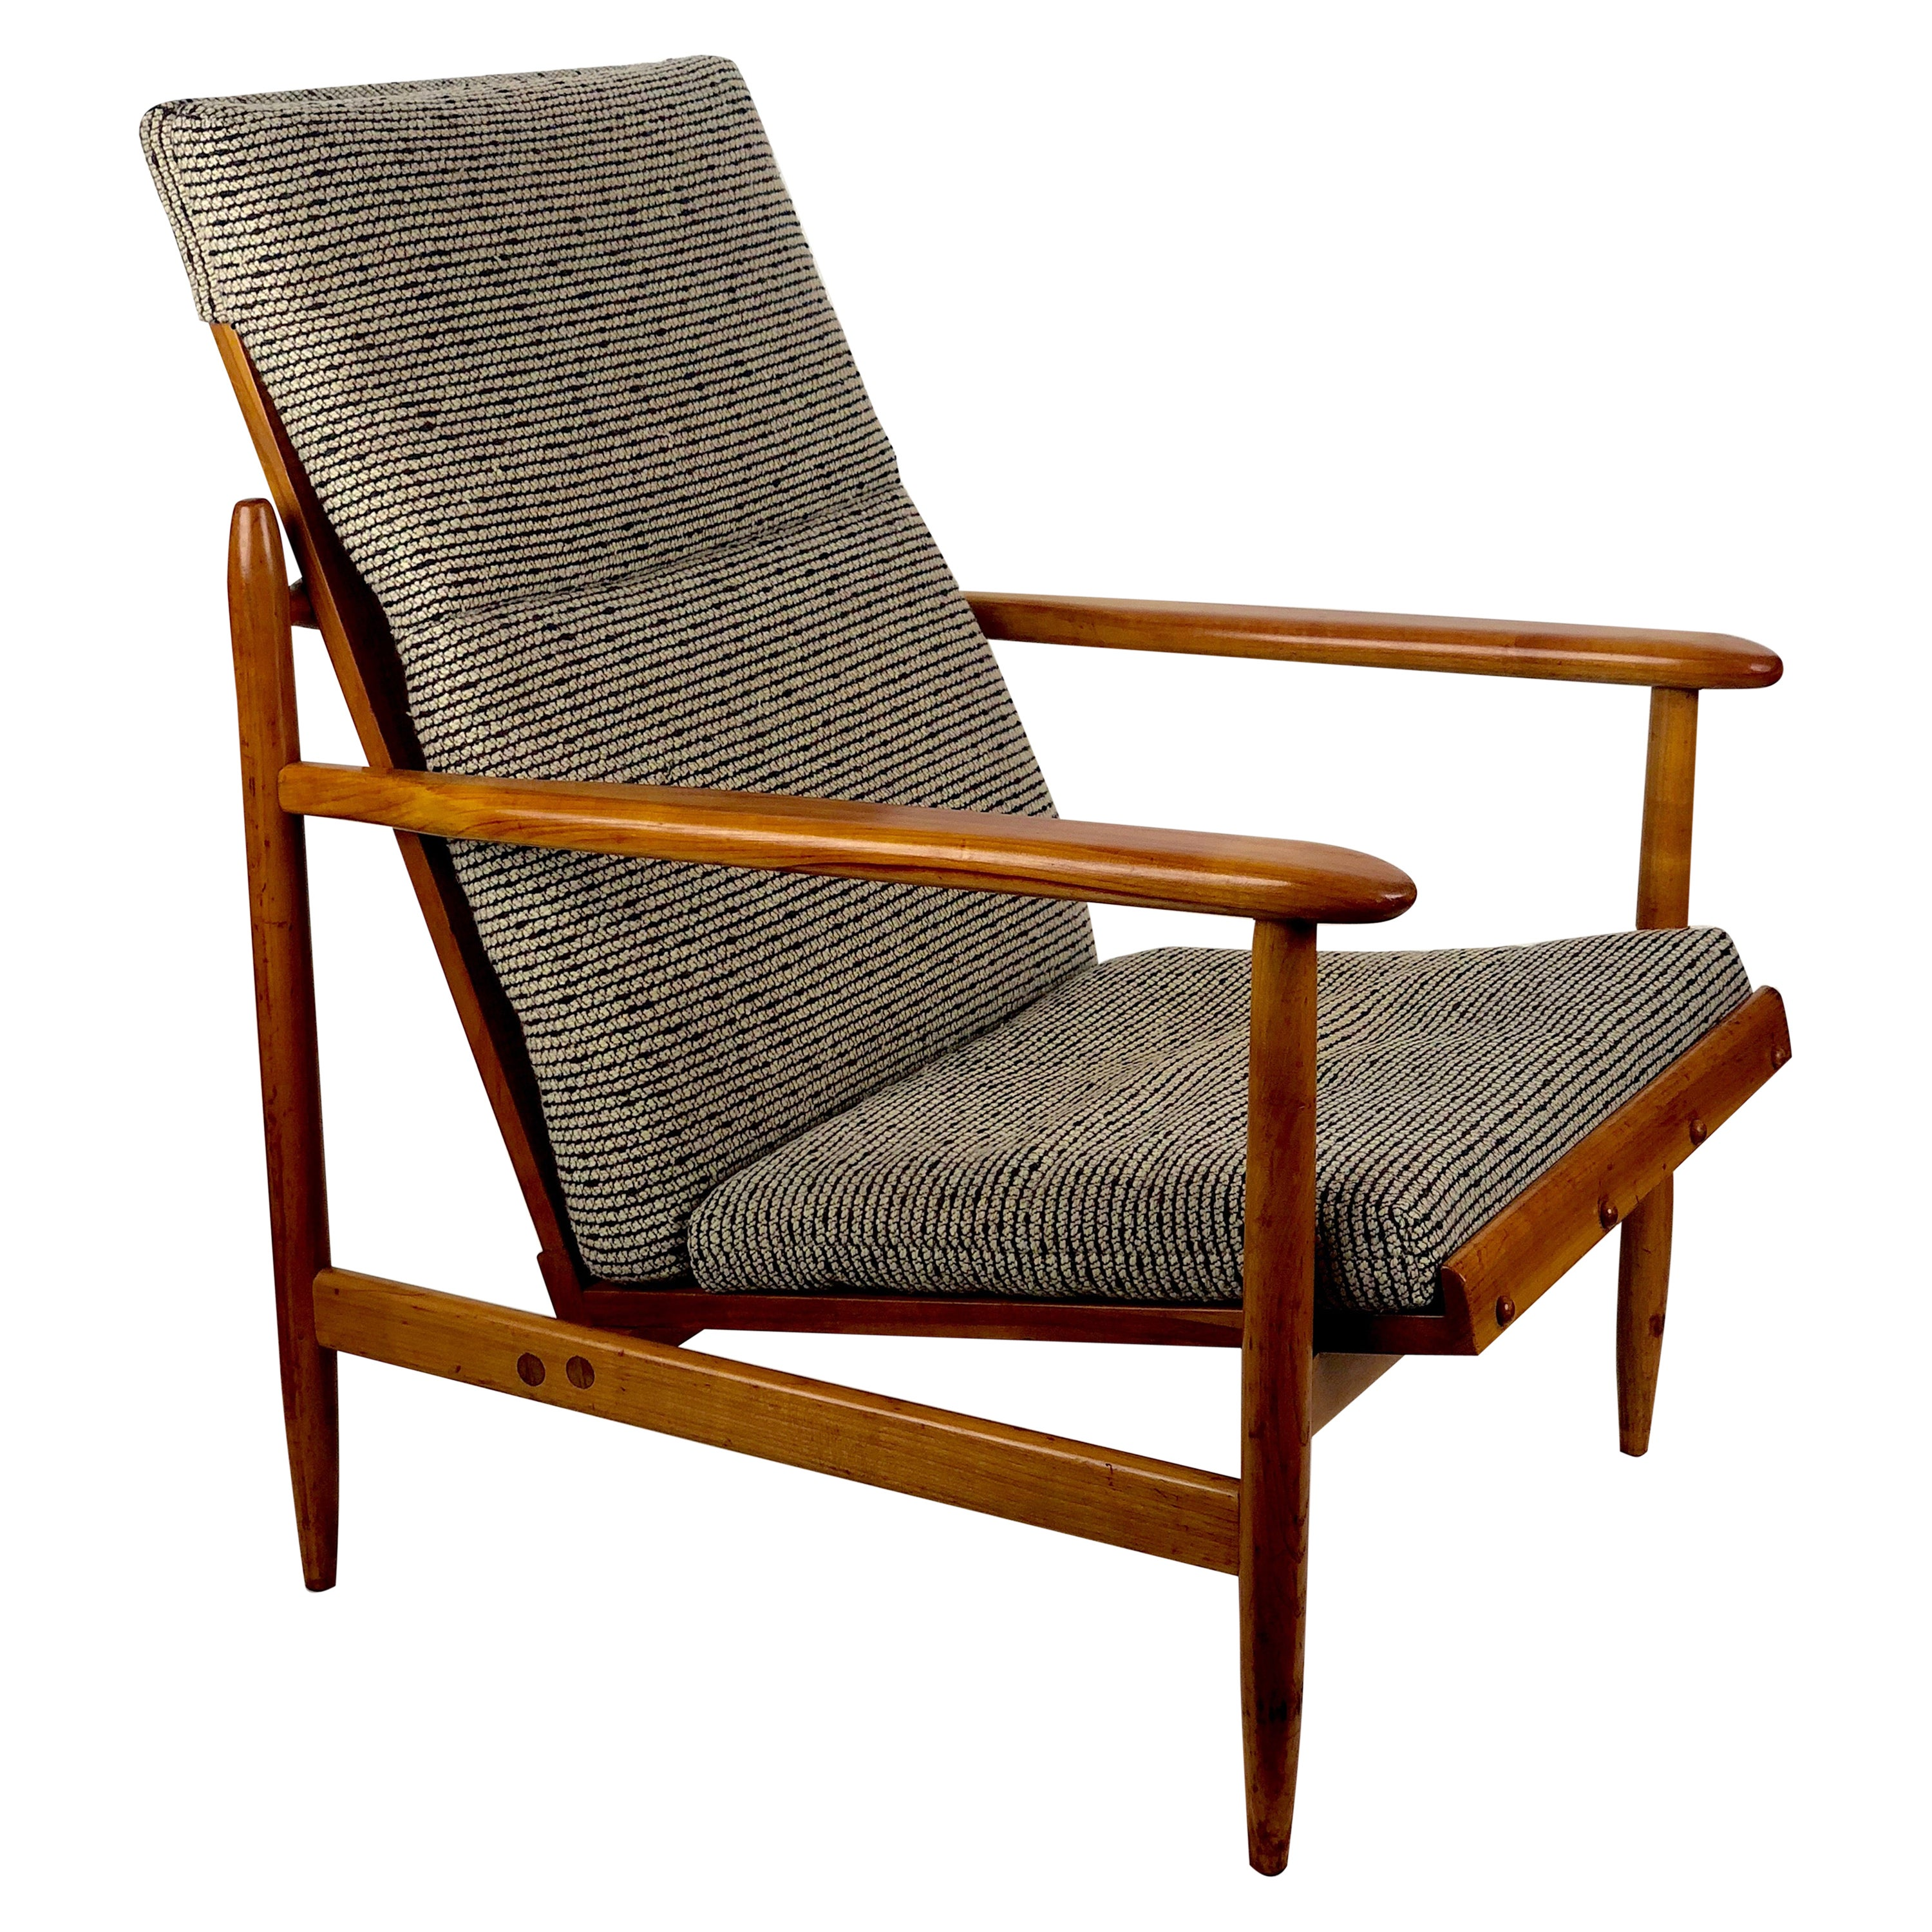 Beautiful Armchair from Uluv in Cherry, 1960